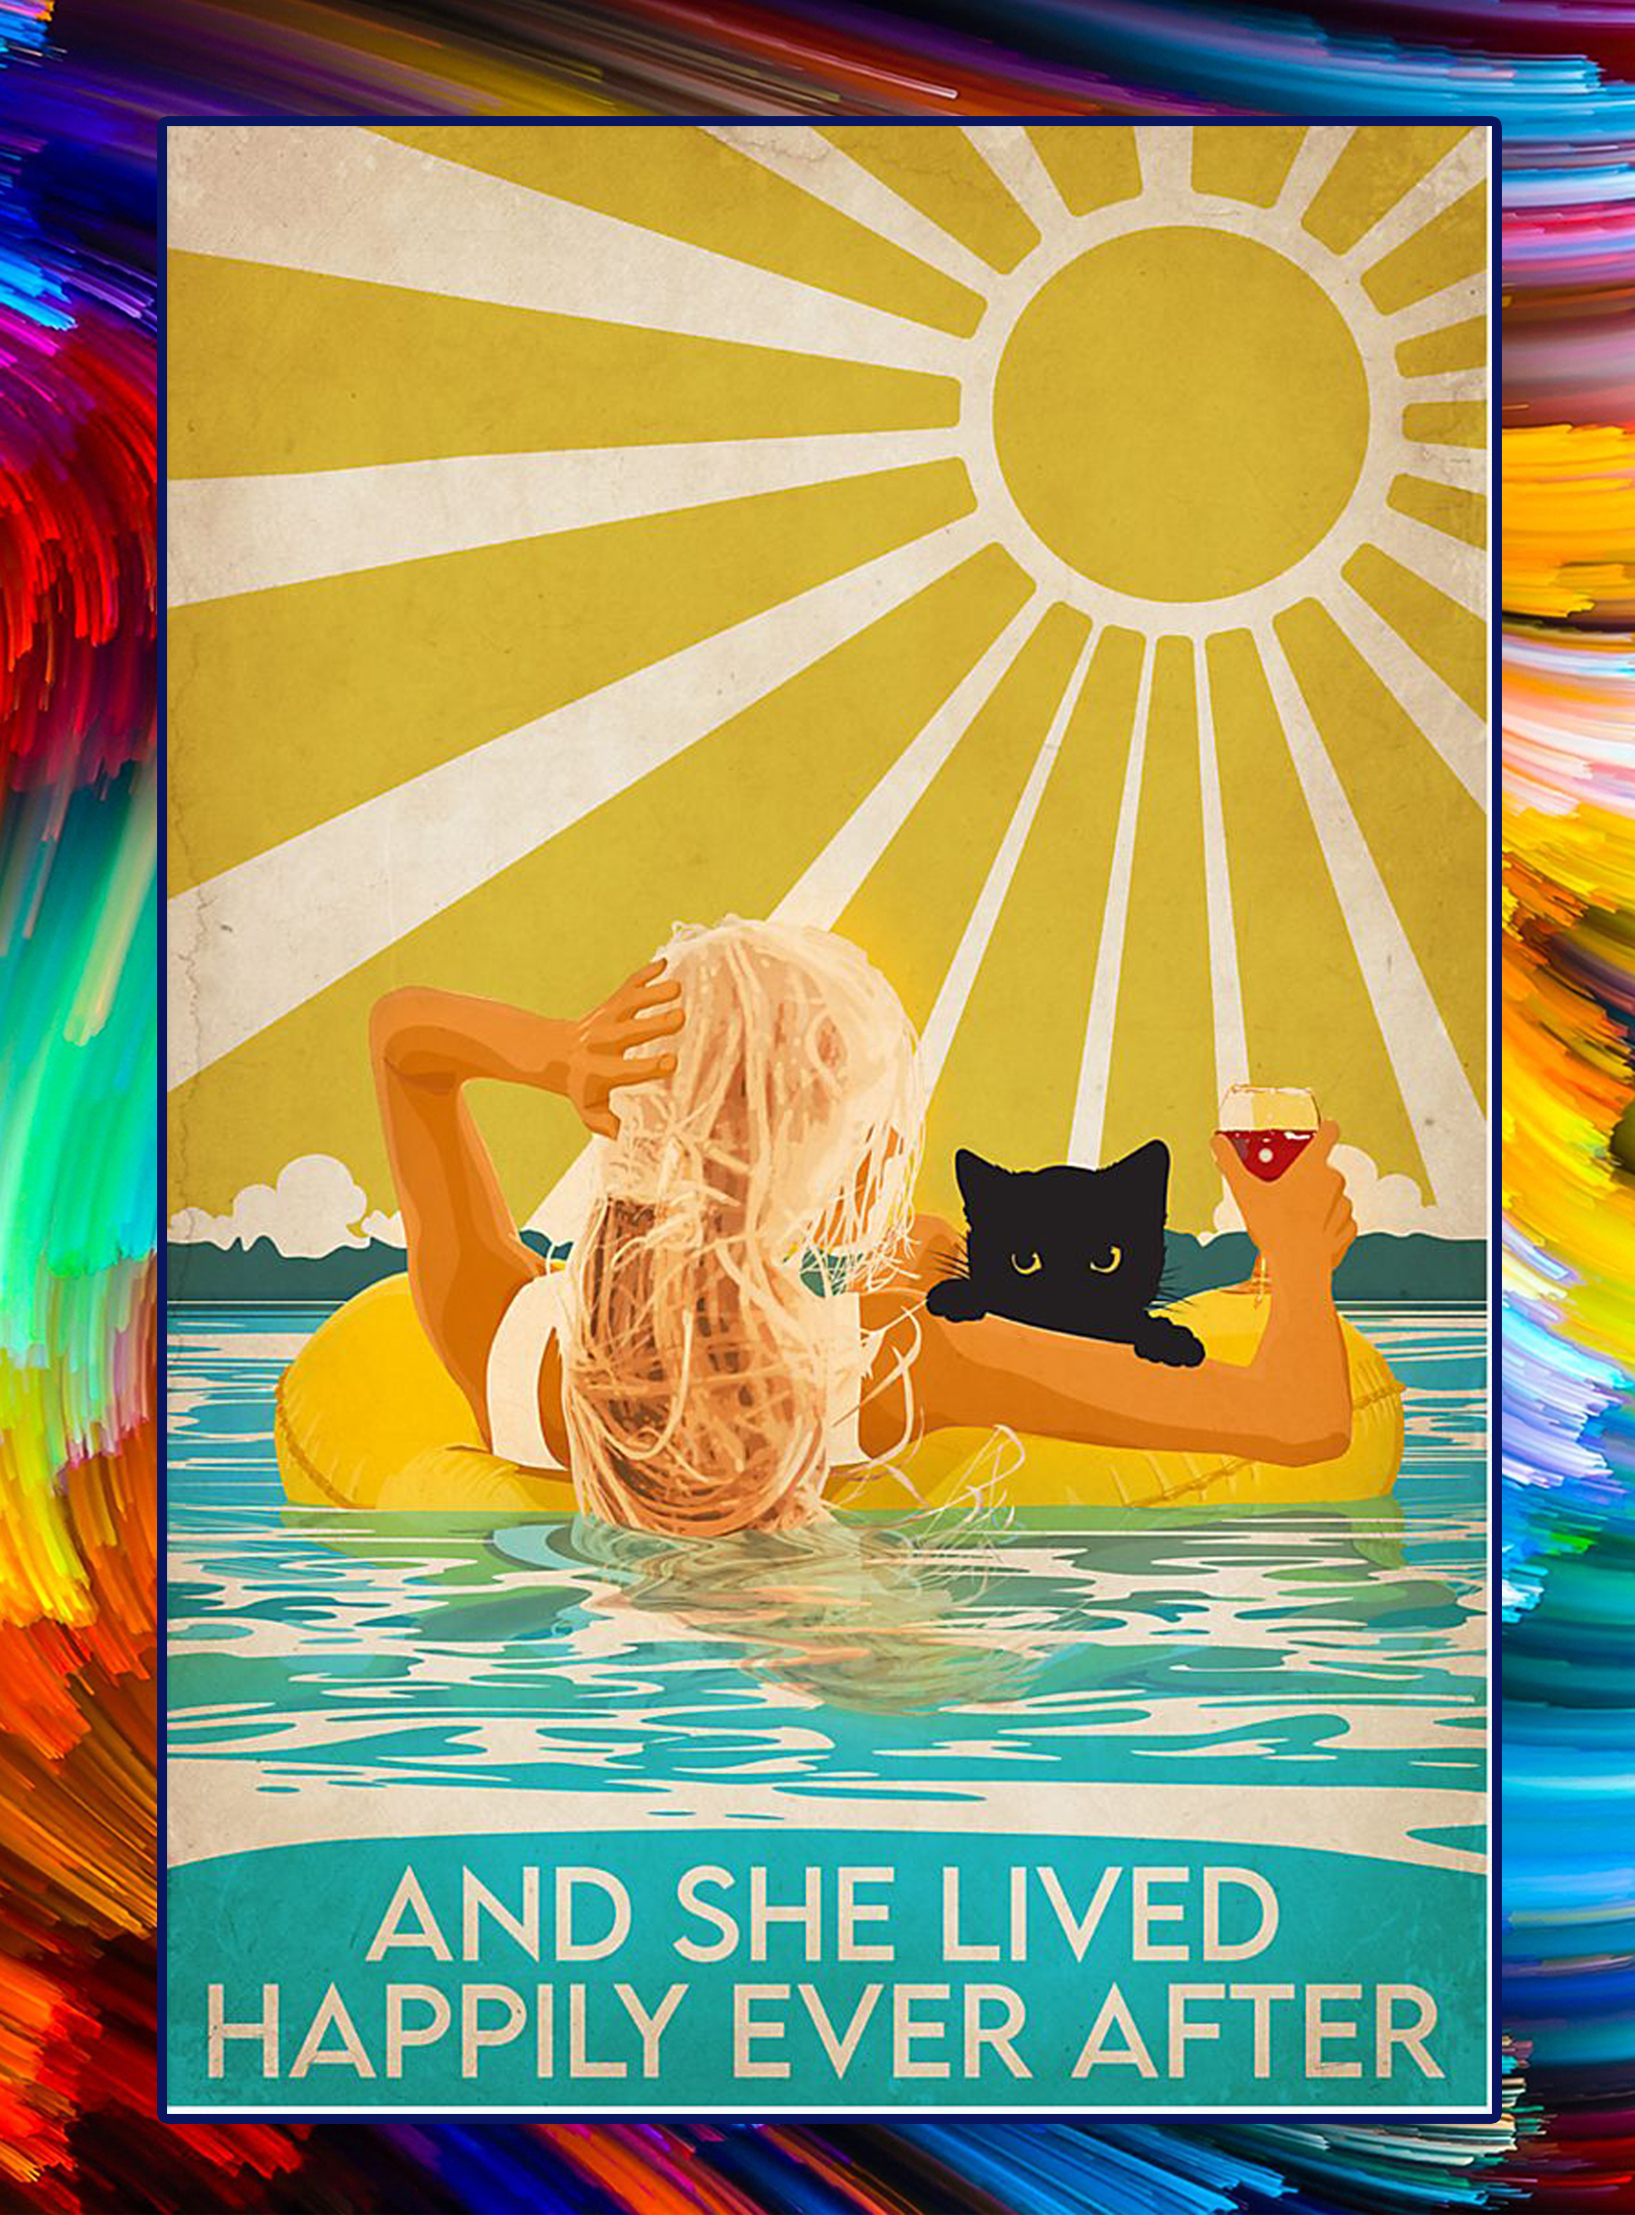 SWIMMING And she lived happily ever after poster - A3